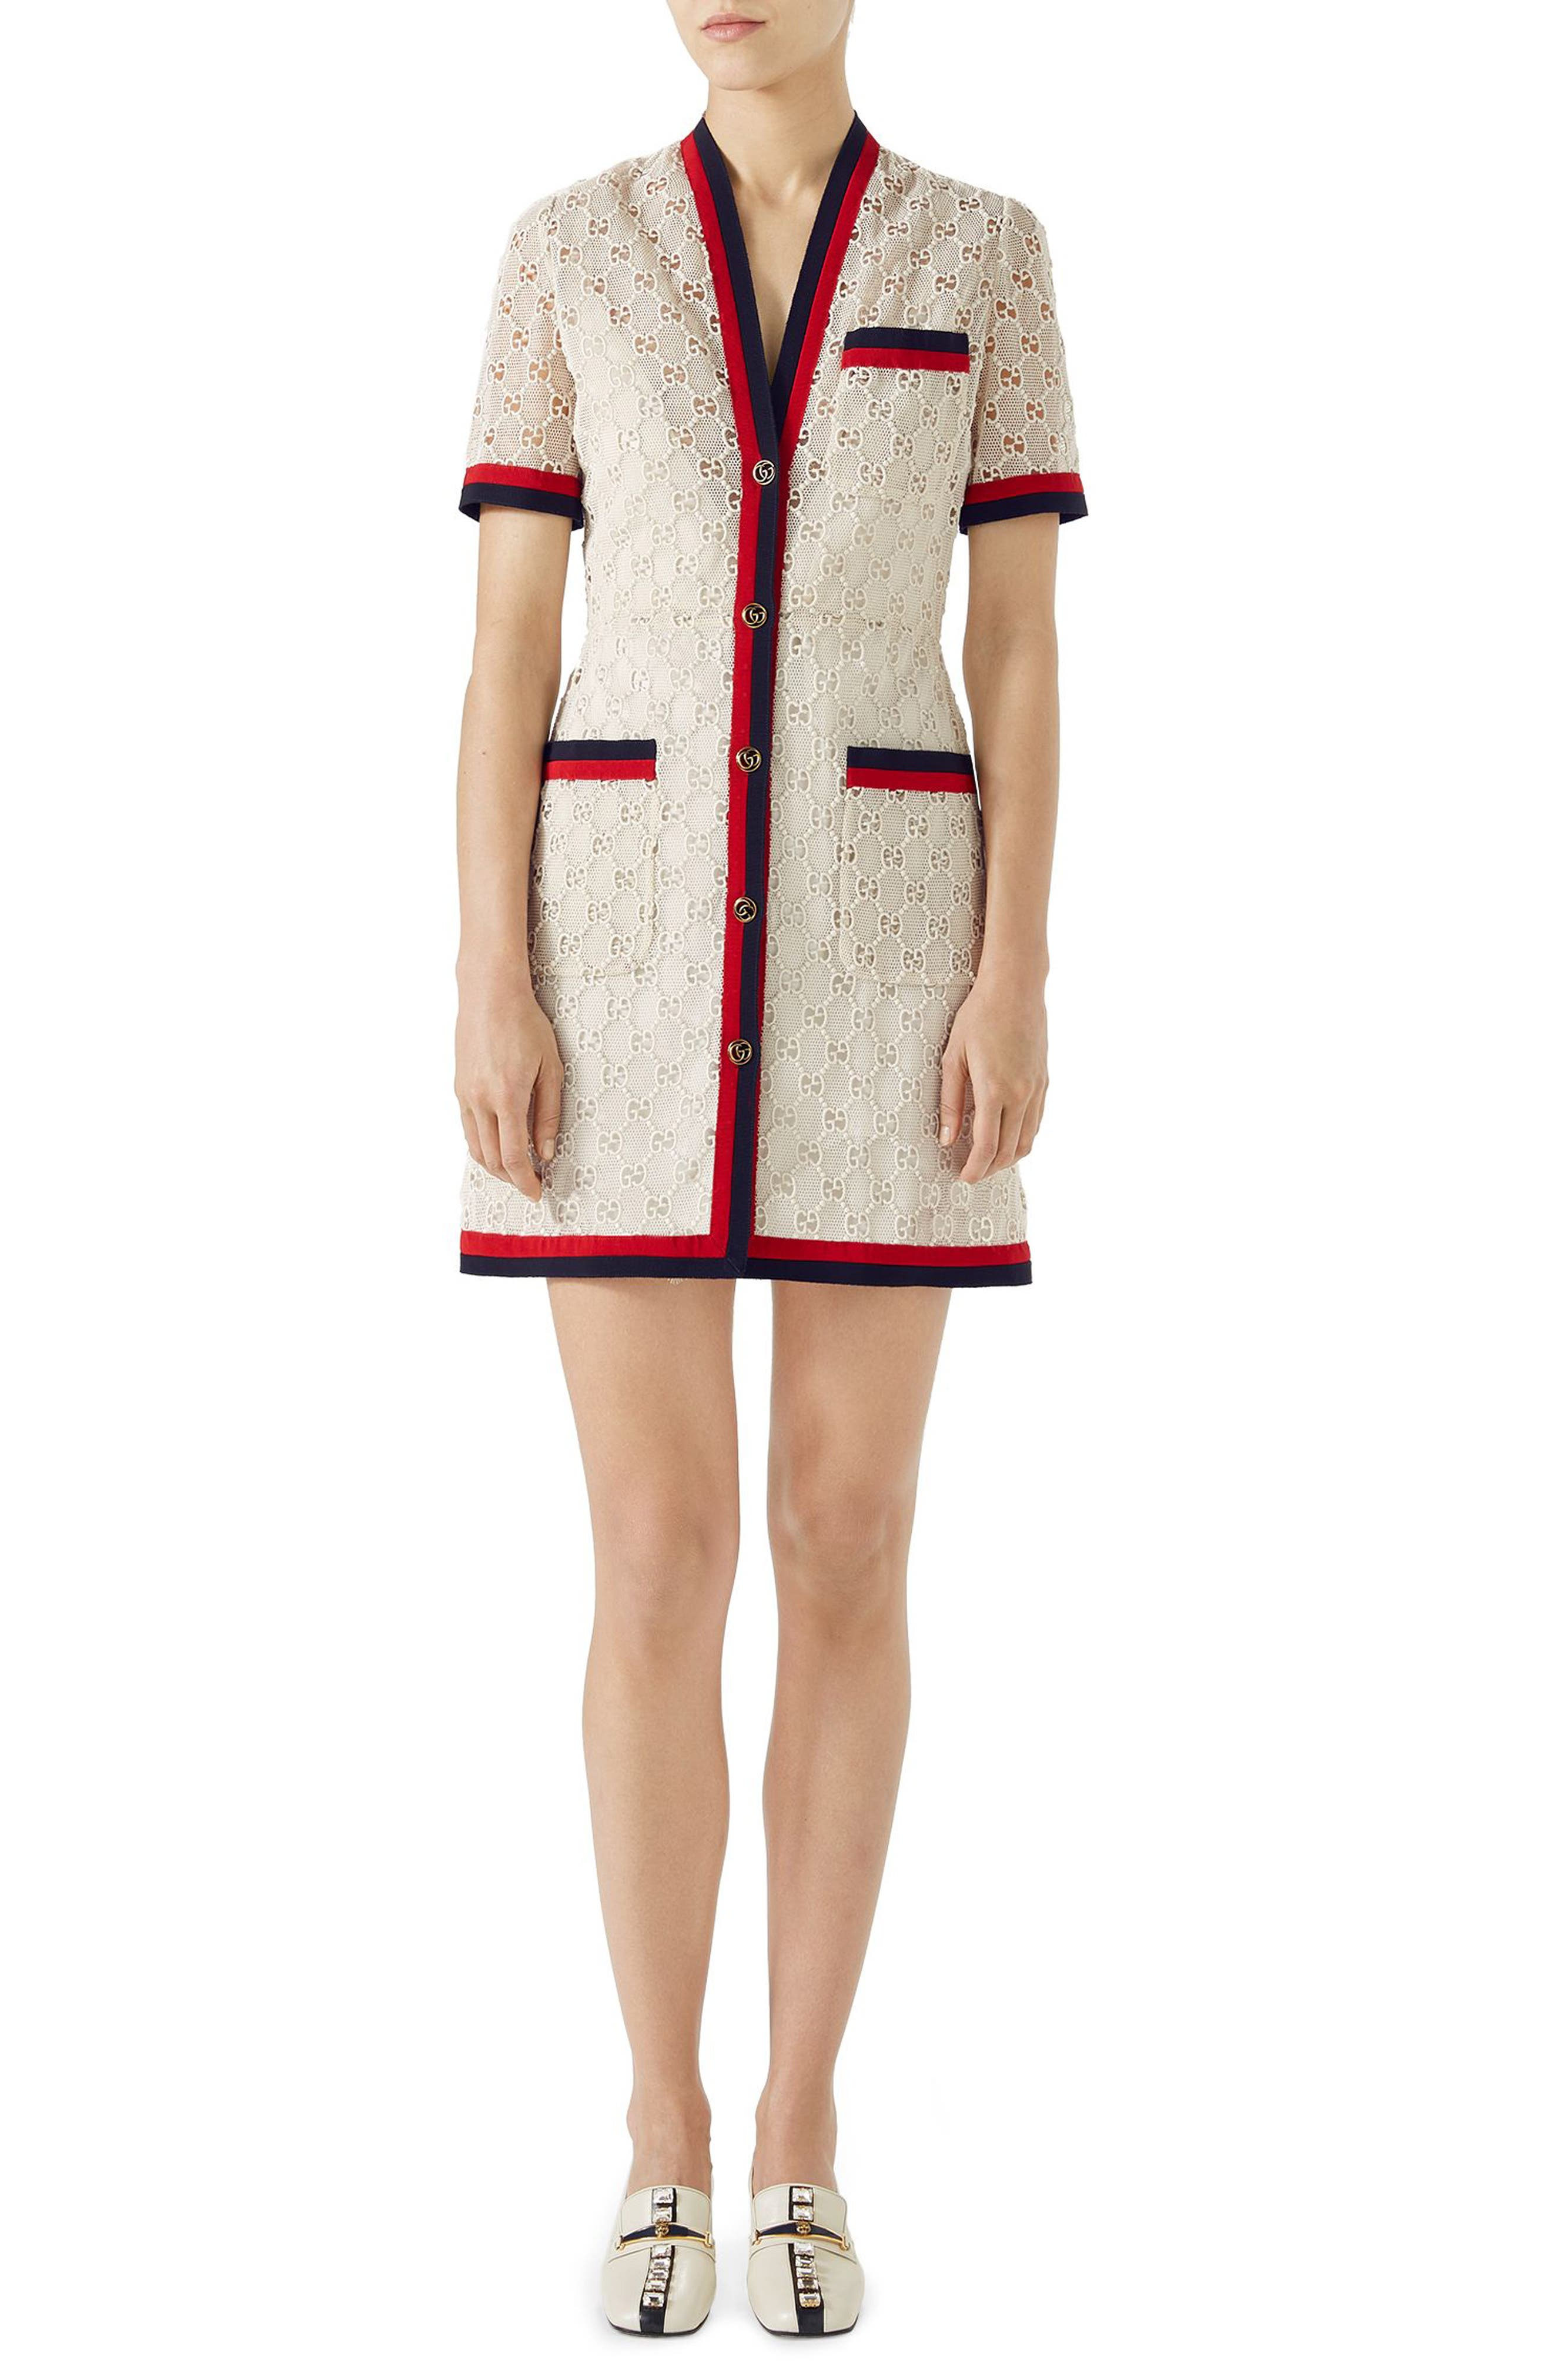 GG Macramé Dress,                             Main thumbnail 1, color,                             GARDENIA/ RED/ BK/ RED